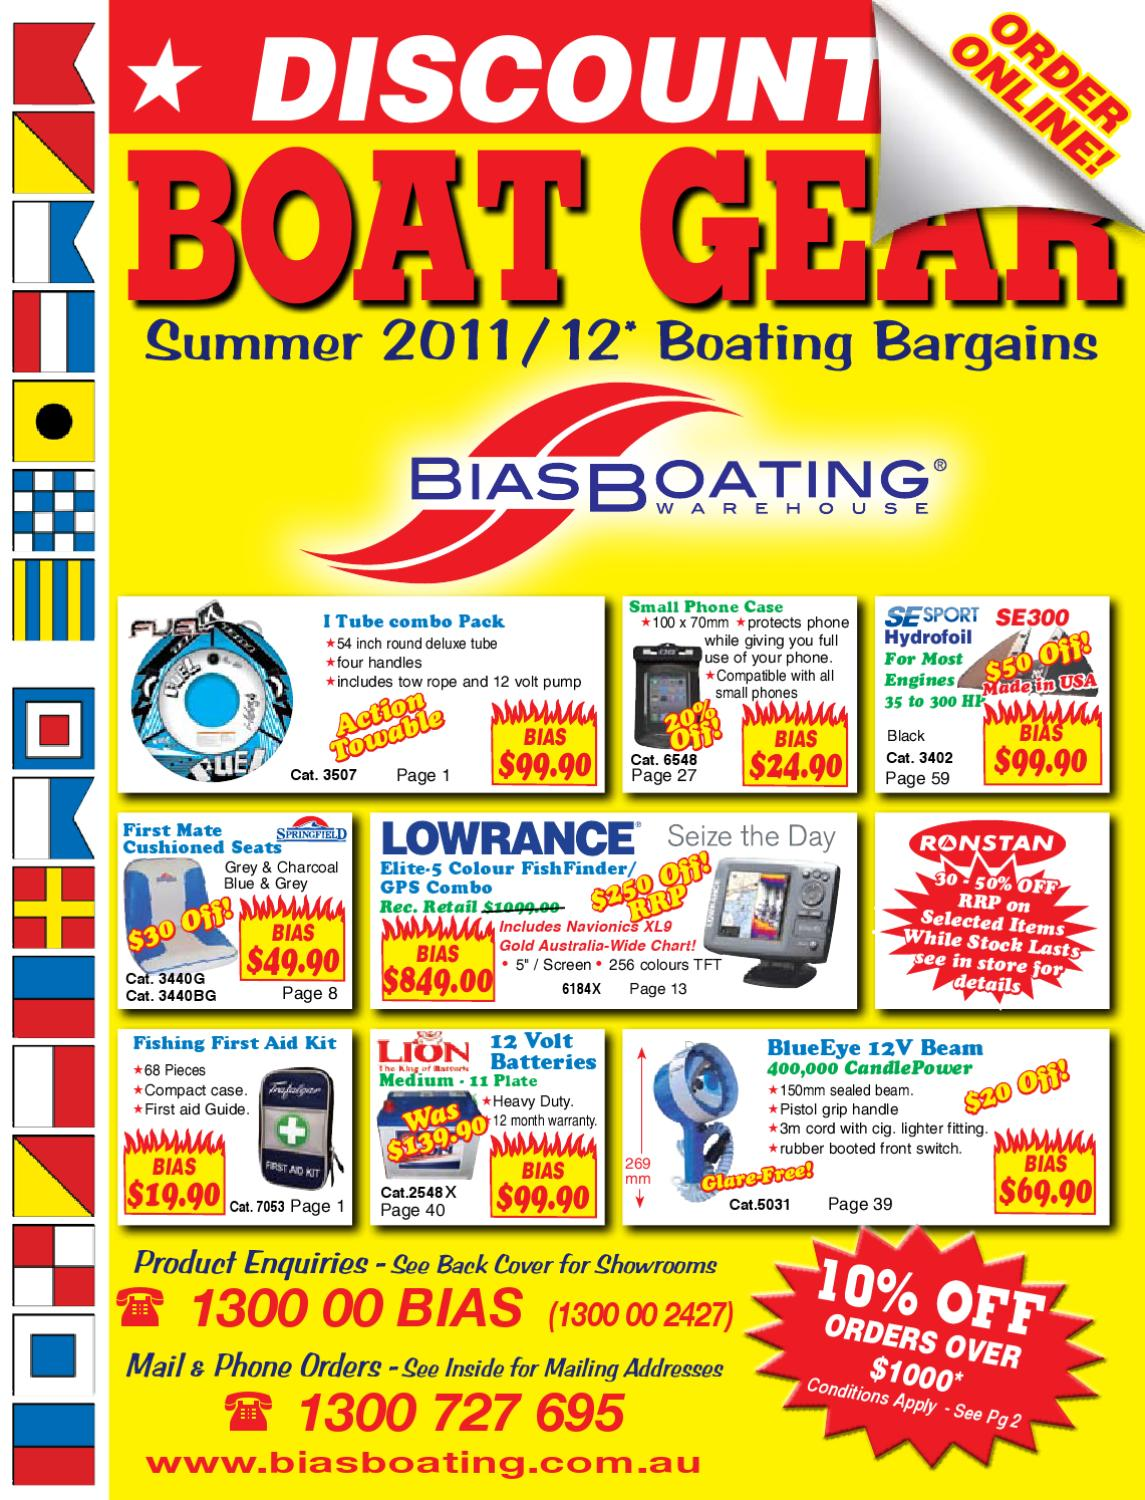 11393d8e9d0d2 Bias Boating Summer 2011 2012 Product Catalogue by Bias Boating Warehouse -  issuu